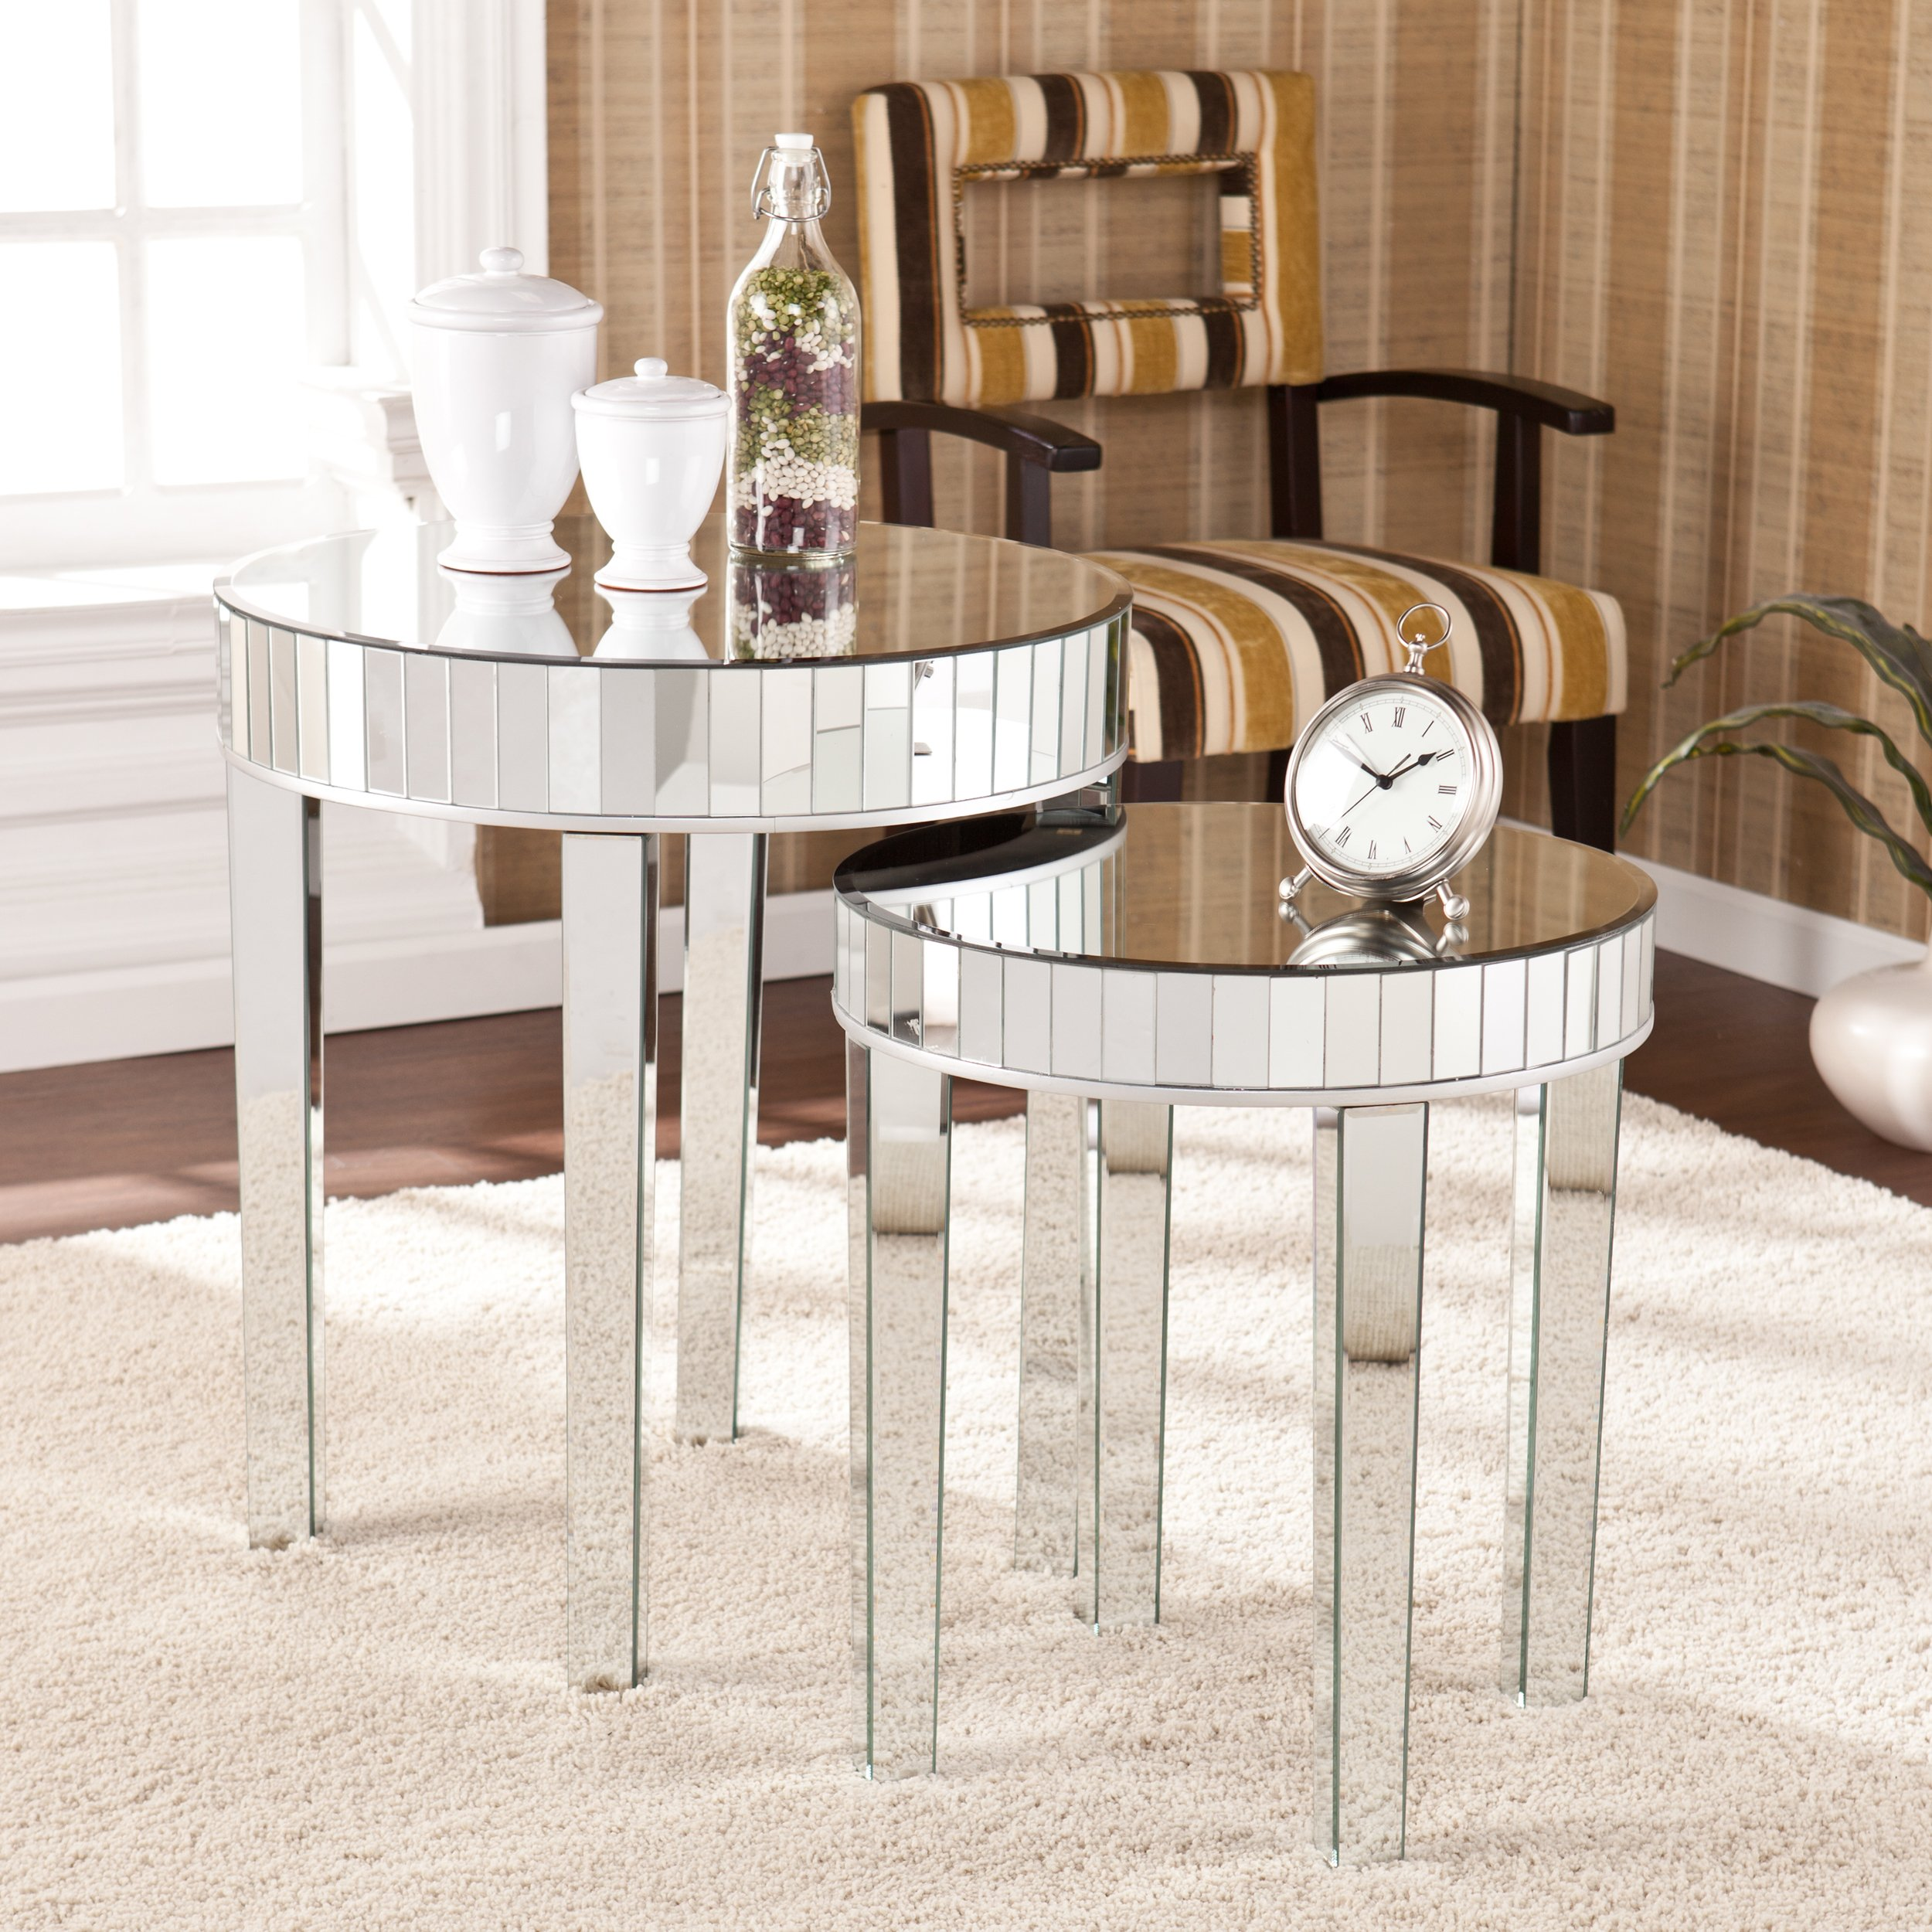 harper blvd tifton round mirrored nesting accent table set upton home rolling tool box dark wood nightstand with drawers marble top dining pub height davenport furniture placemats